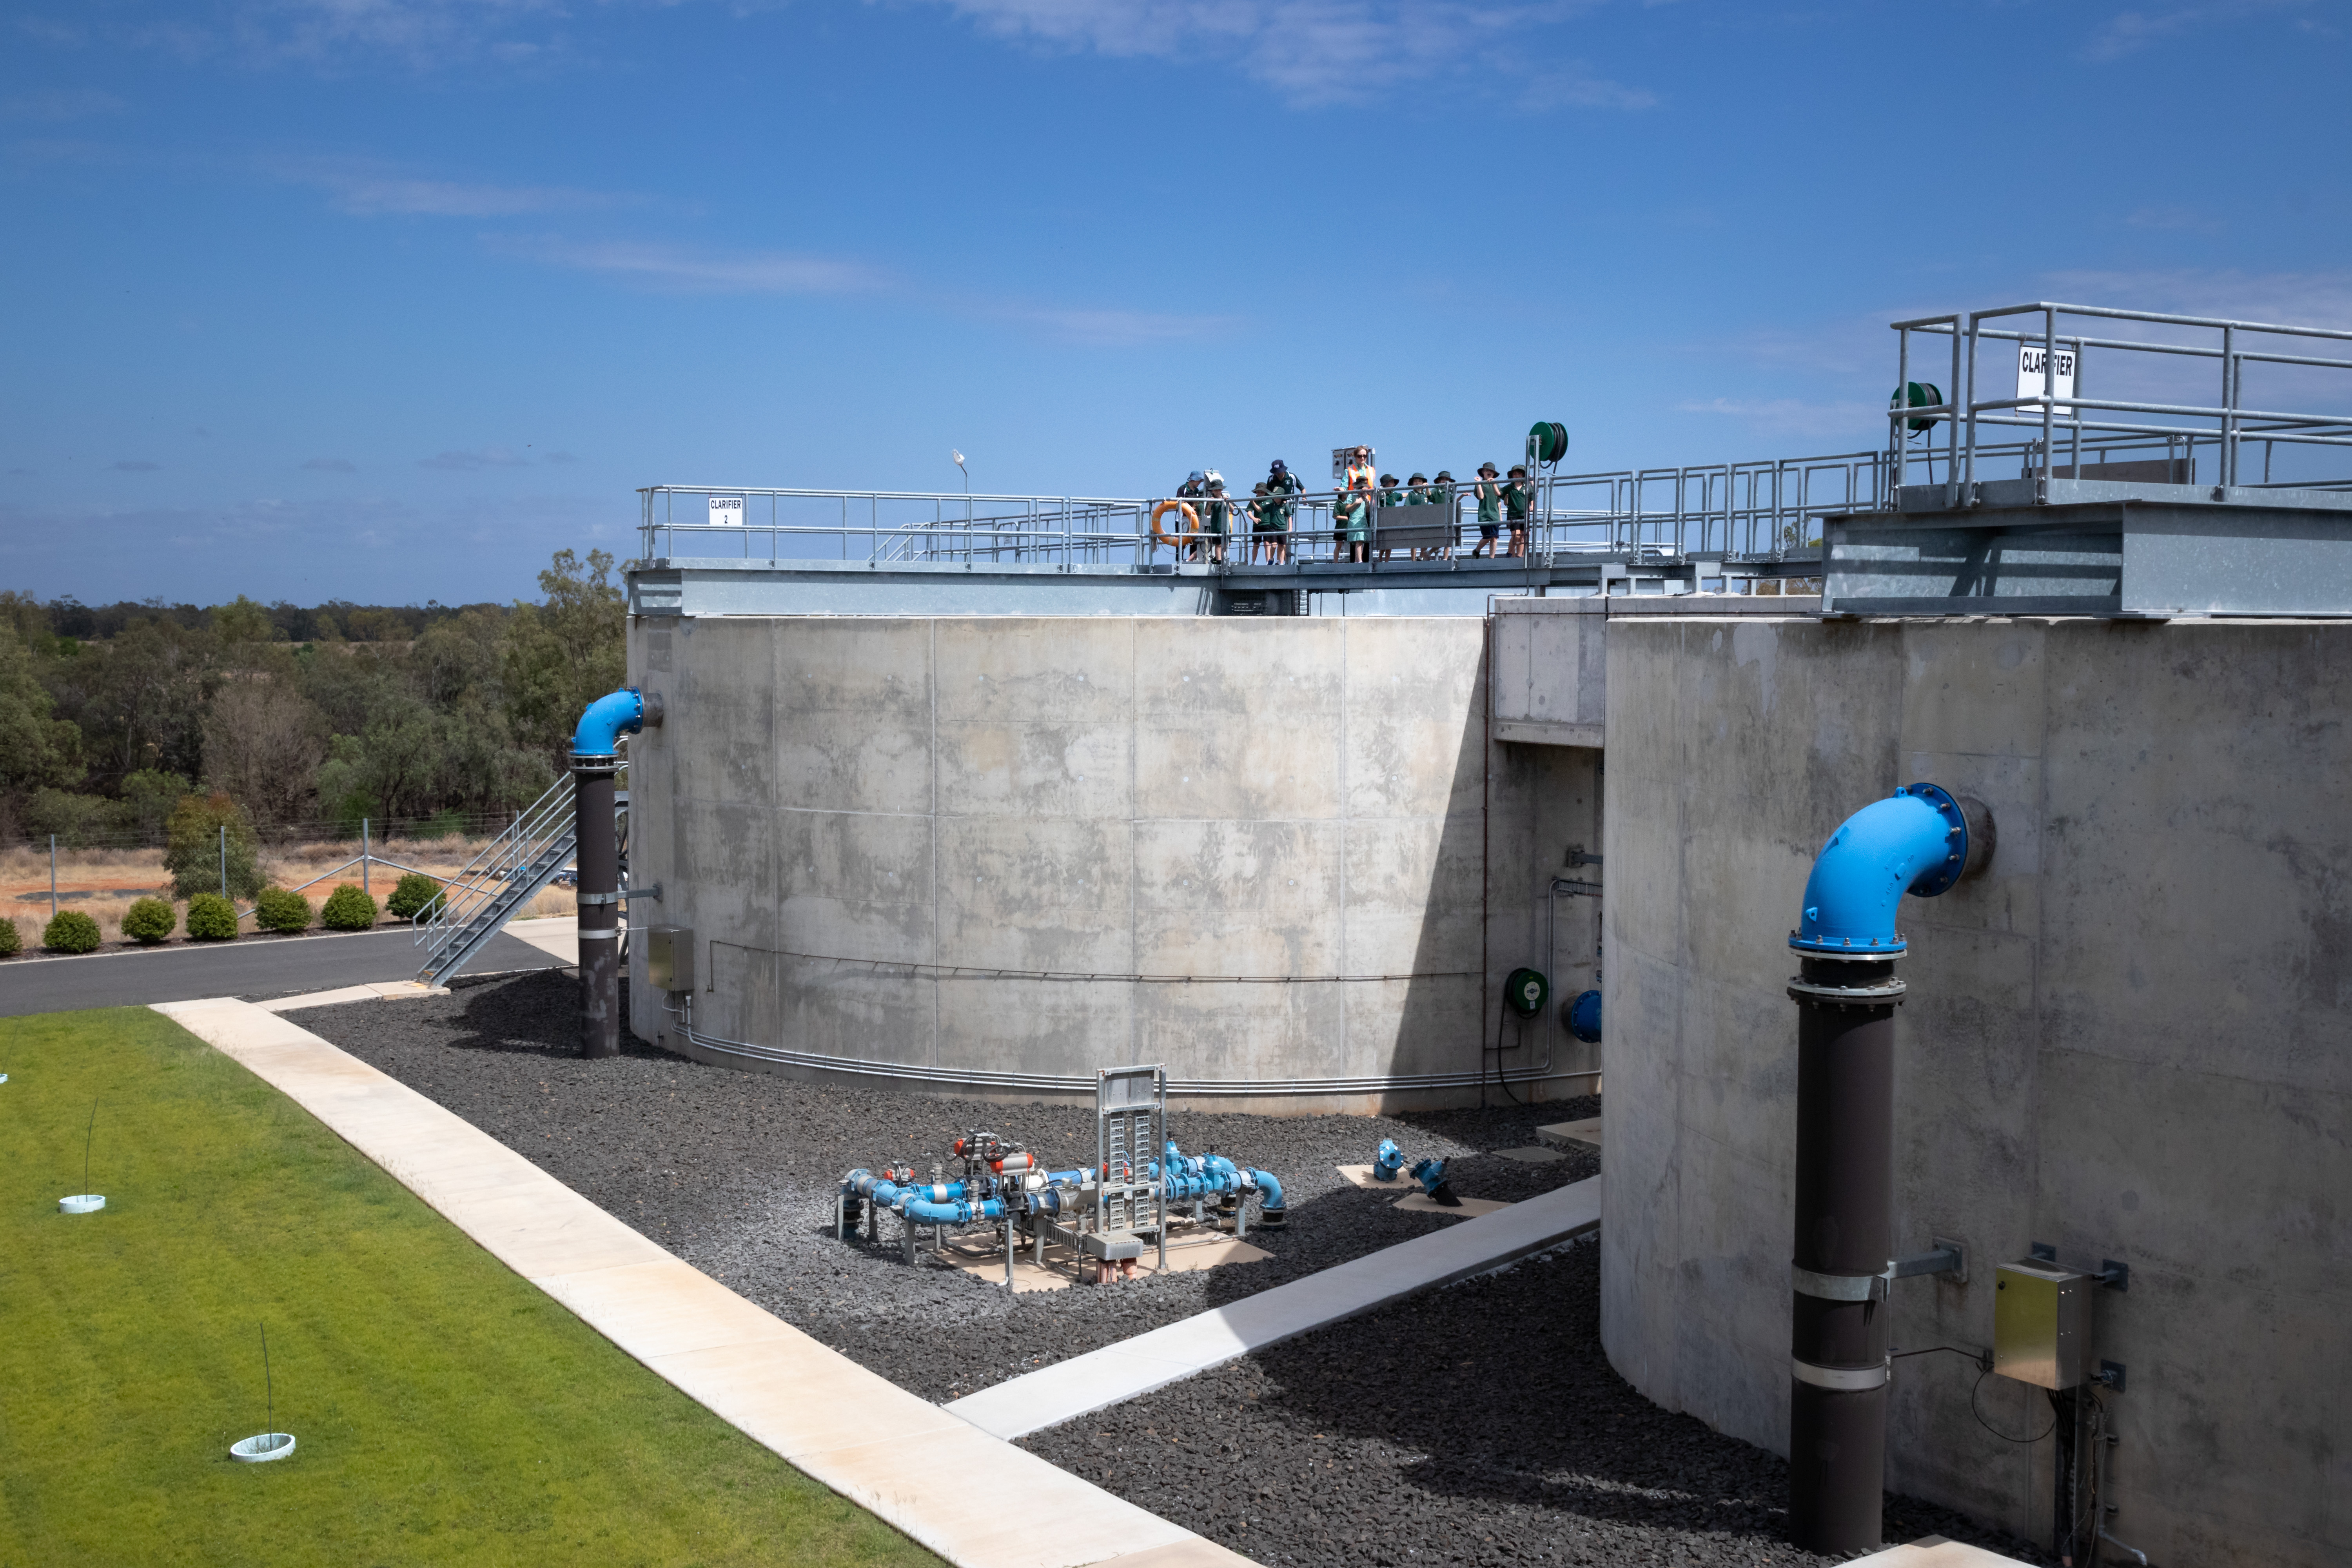 Water treatment plan - large water tanks near green lawn and with blue skies